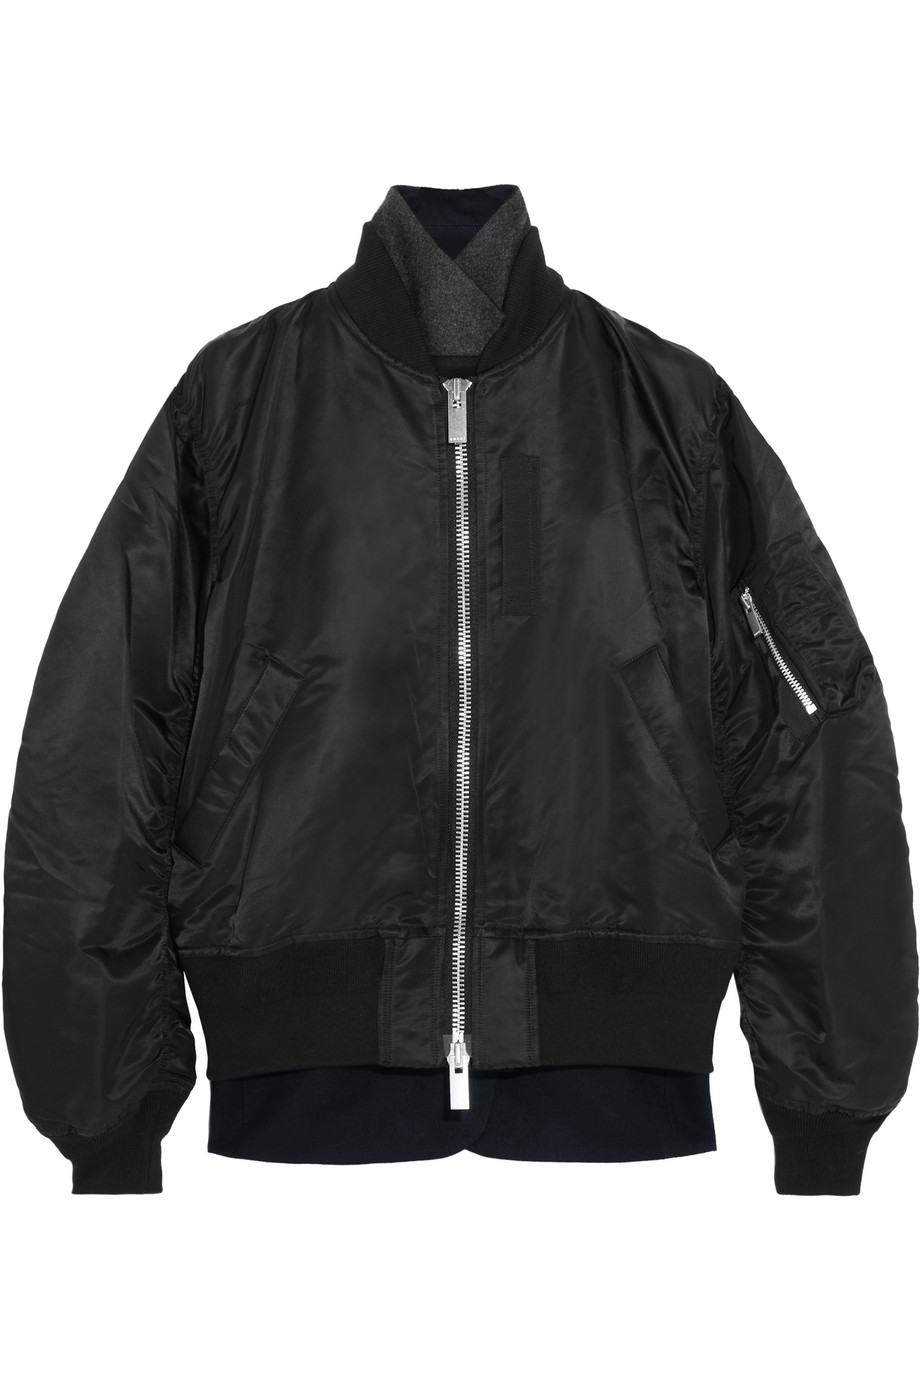 Sacai Wool Crepe-Trimmed Shell Bomber Jacket, Size: 3